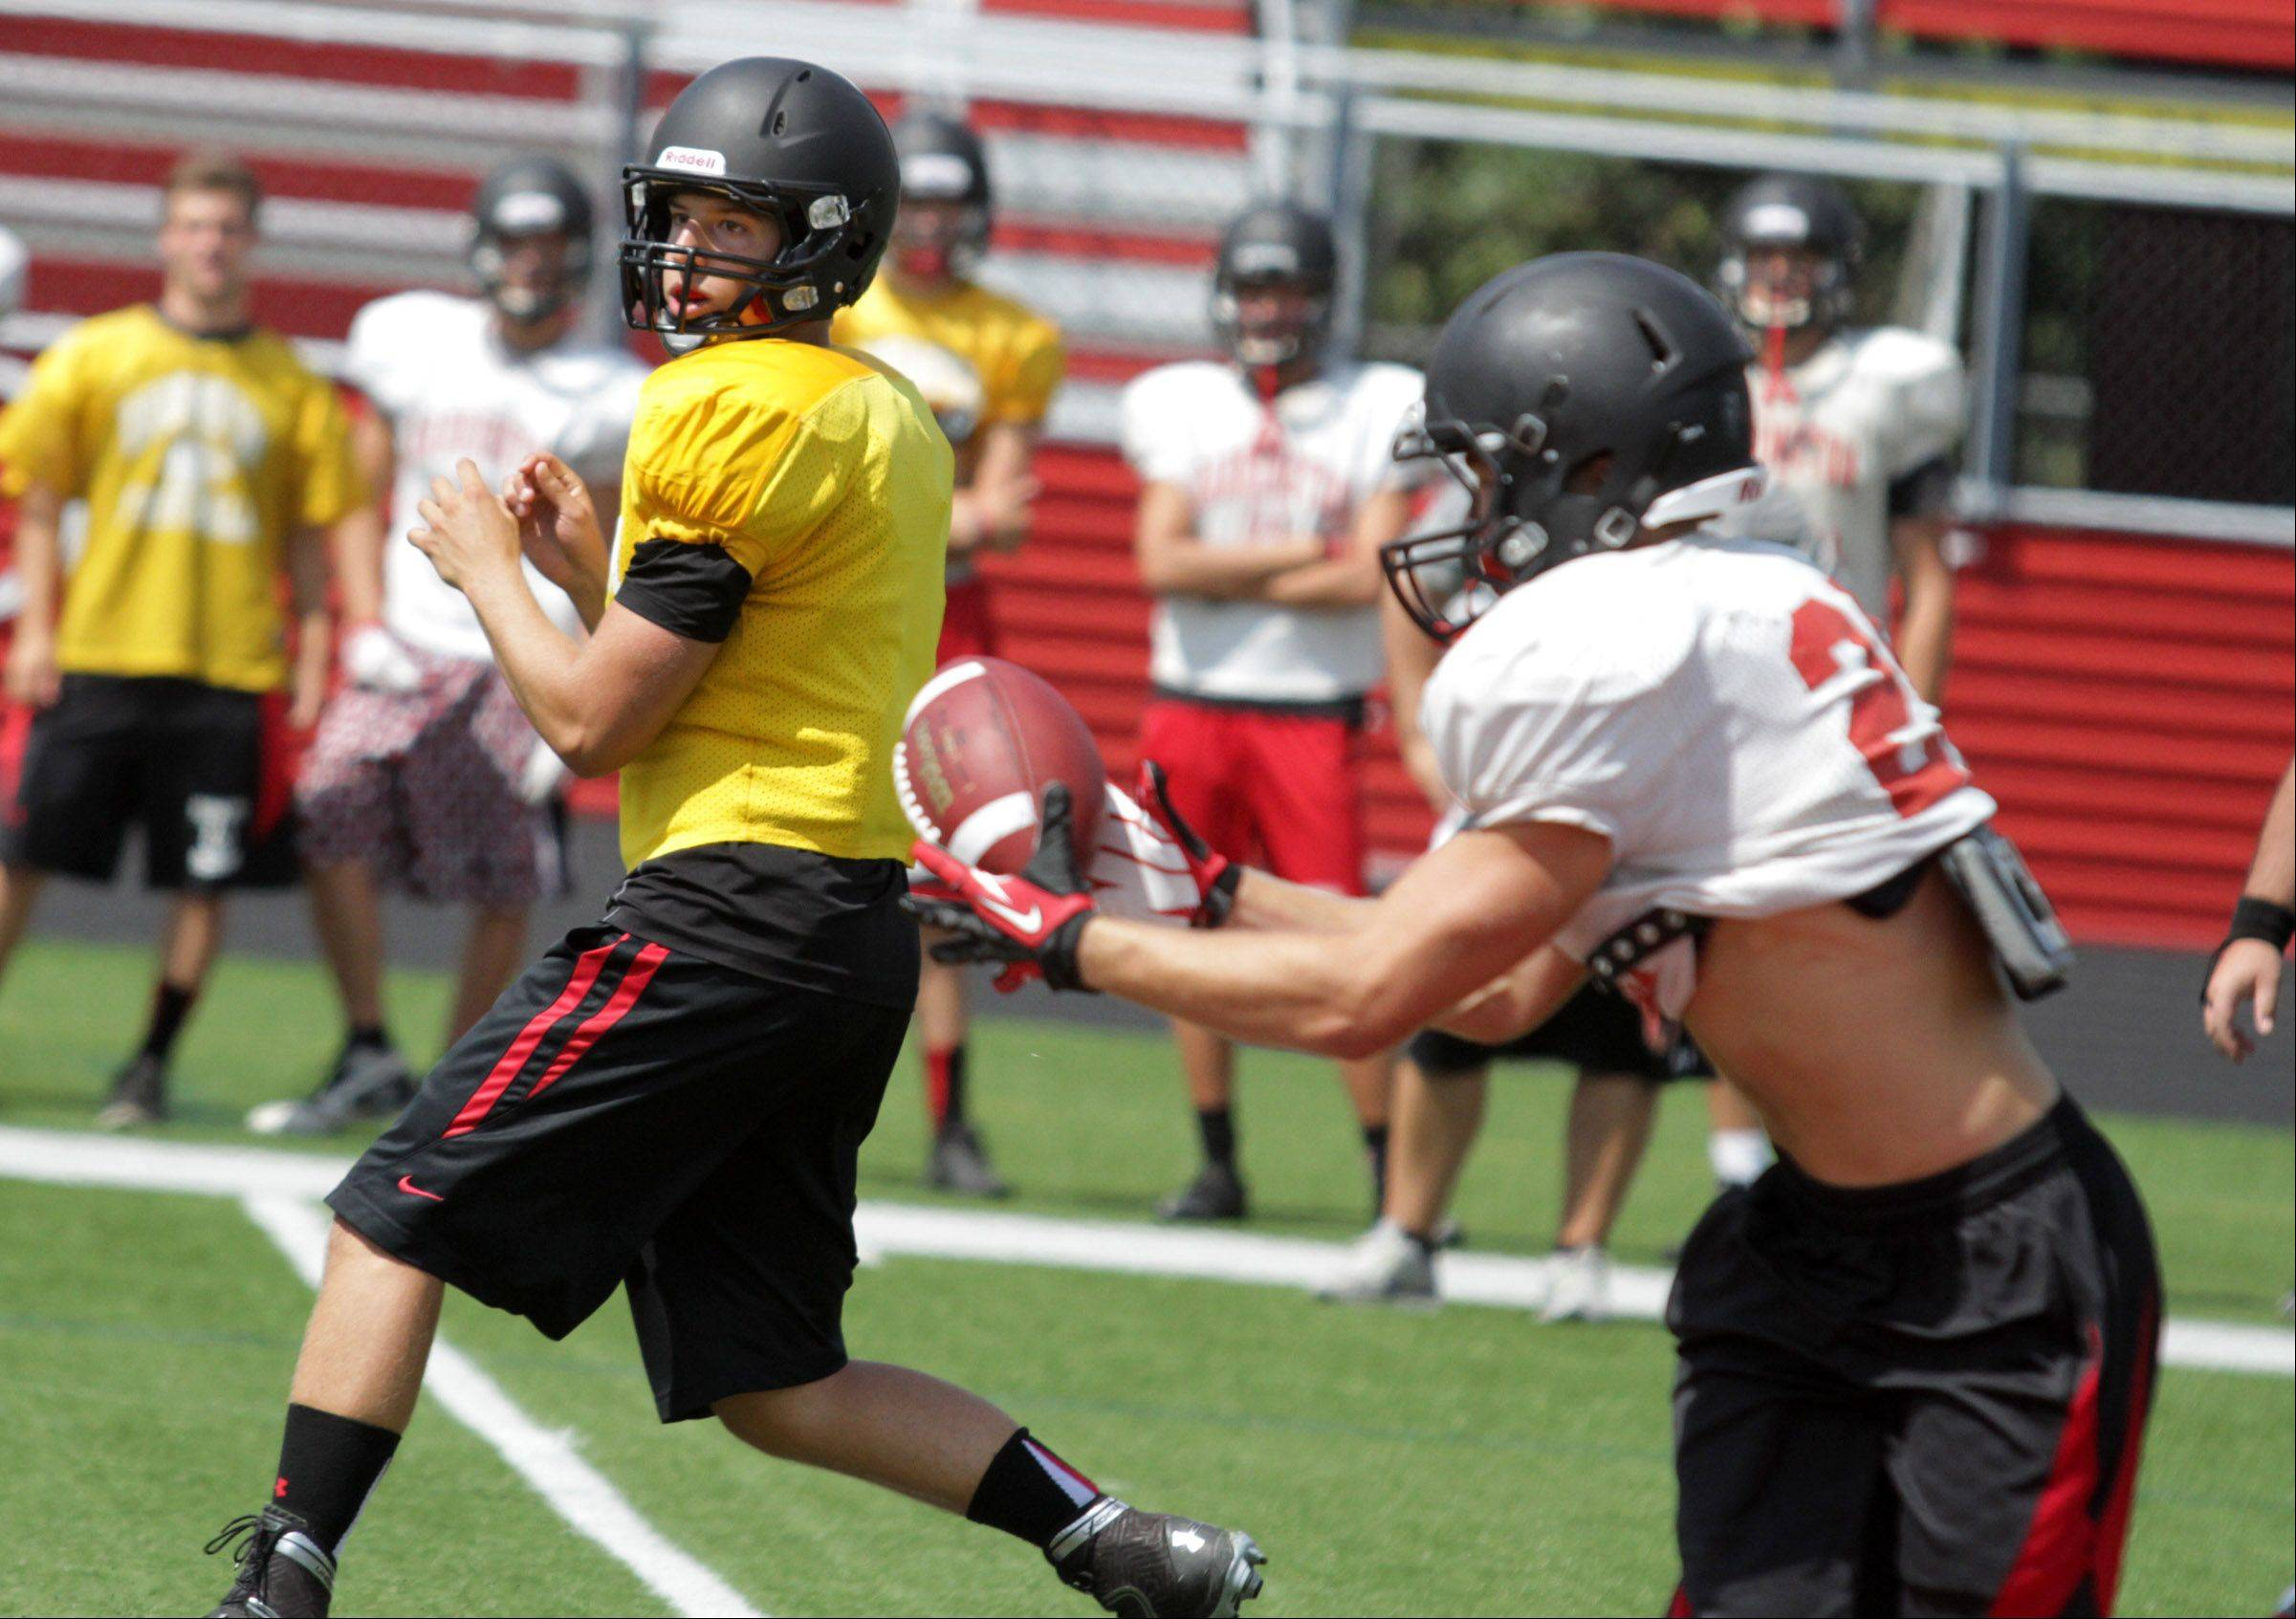 Barrington quarterback Daniel Kubiuk pitches out to running back Dylan Abel during preseason practice.